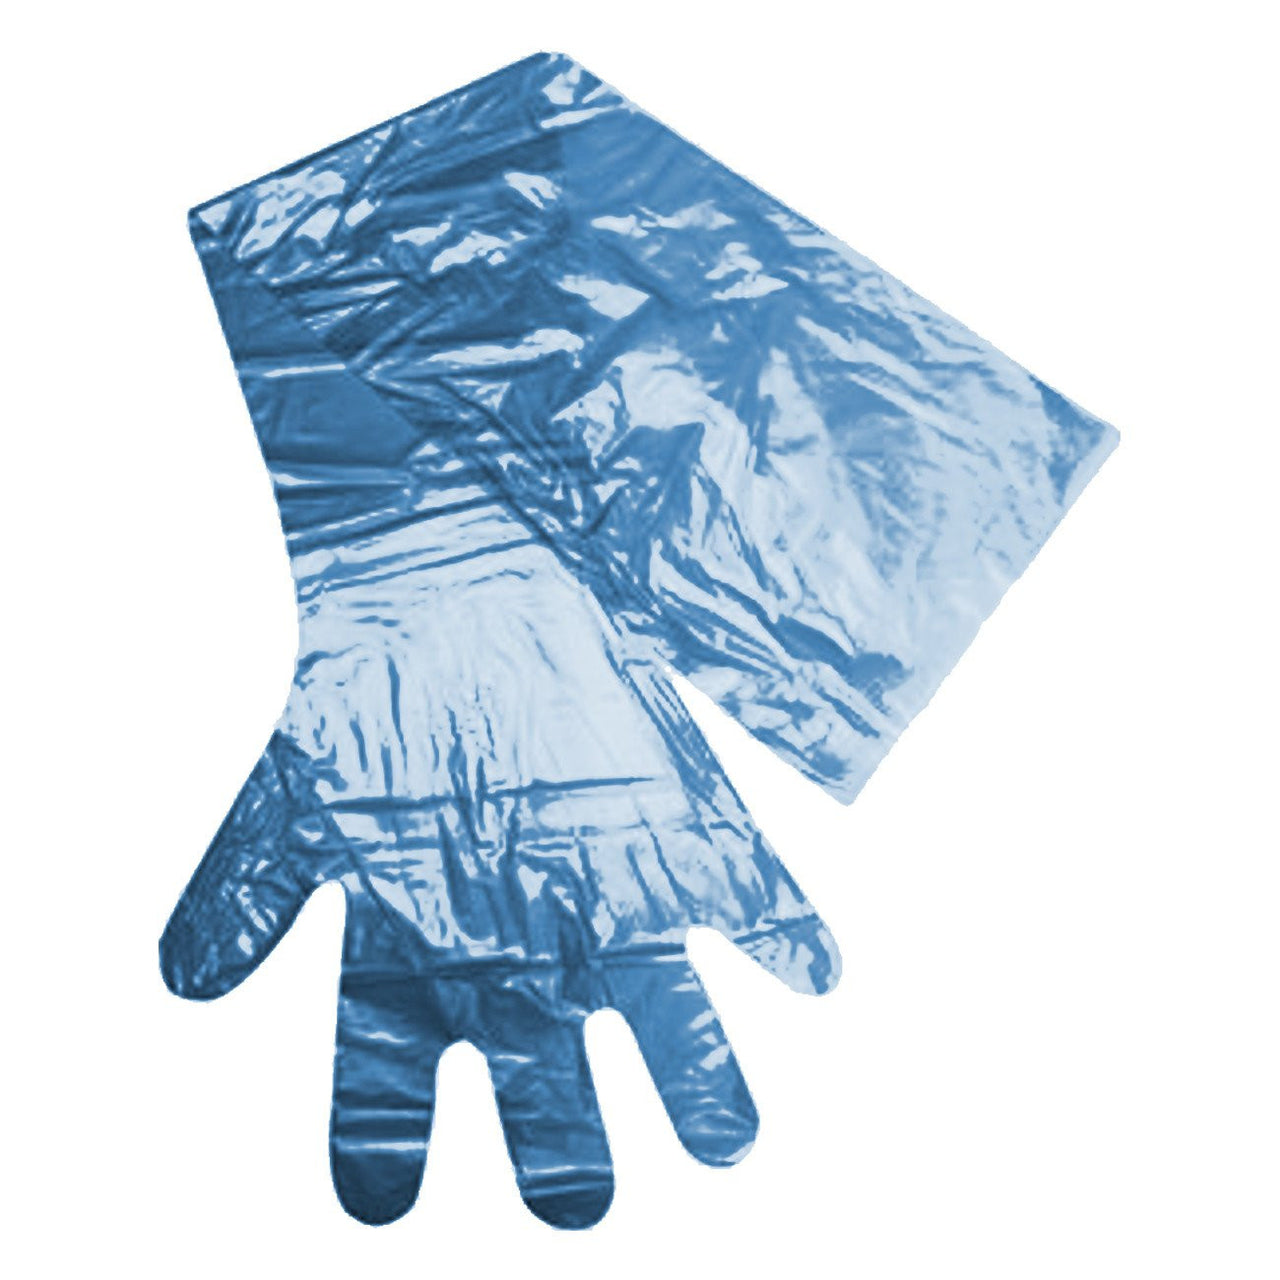 Ape Ob/ai Glove 35 Long By 32¬Μm Thick Blue 100/pk - Biosecurity Ape - Canada